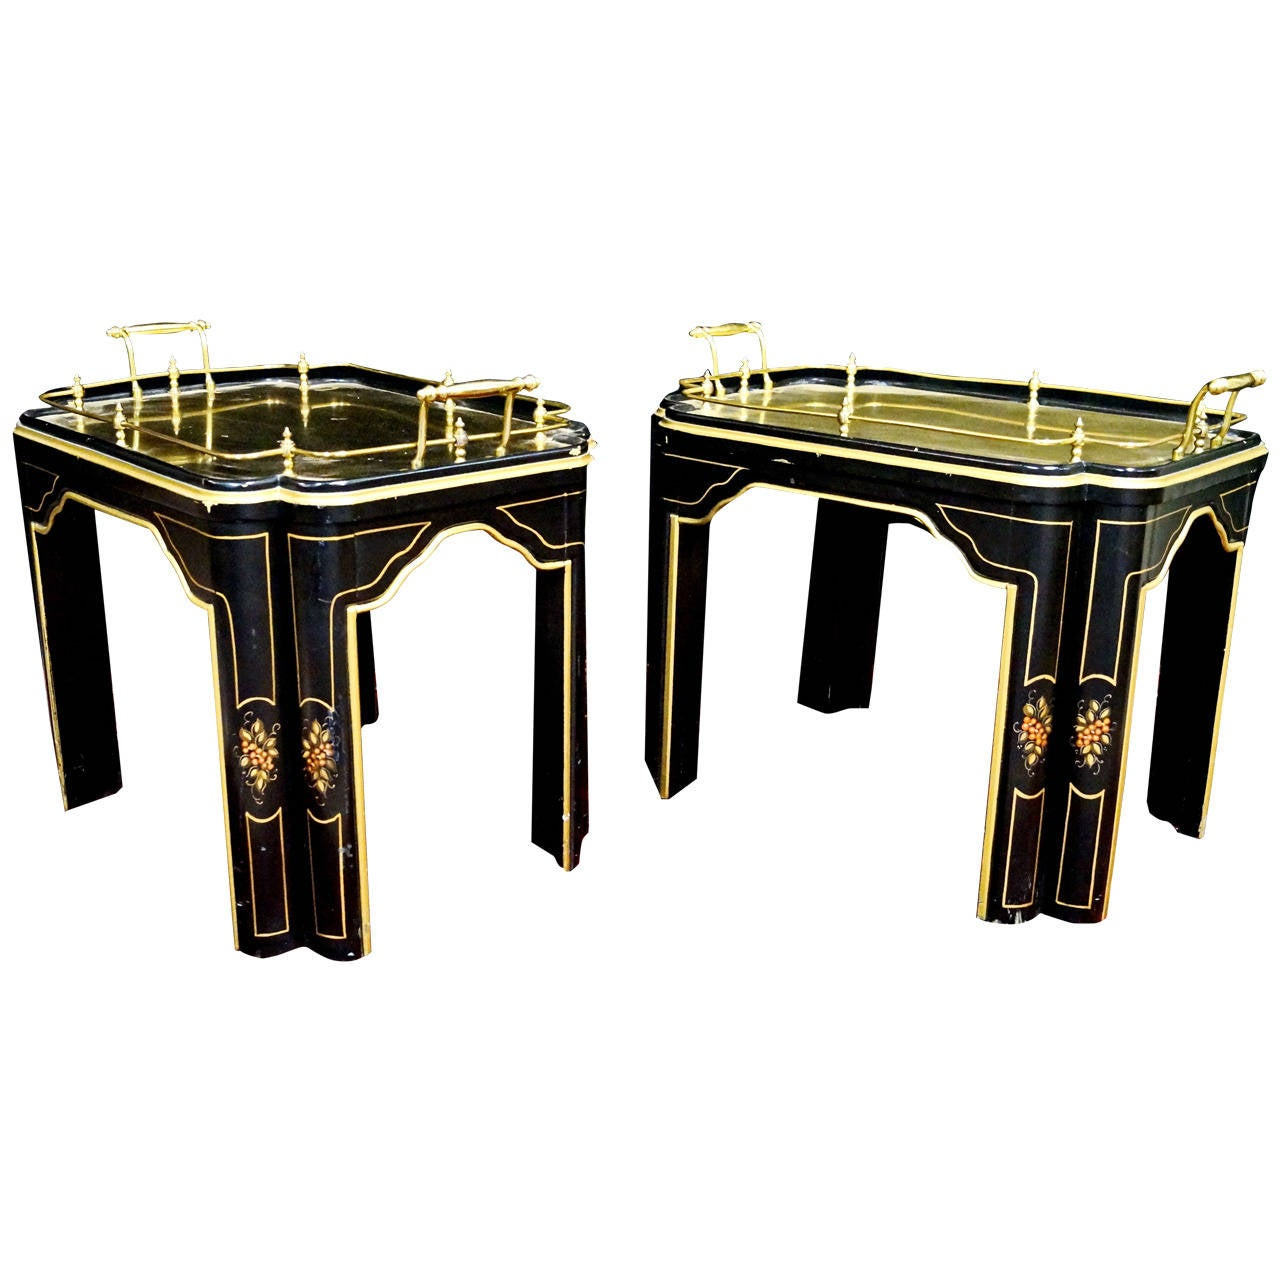 Pair Of Unusual Brass Decorated Coffee Tables Or End Tables At 1stdibs